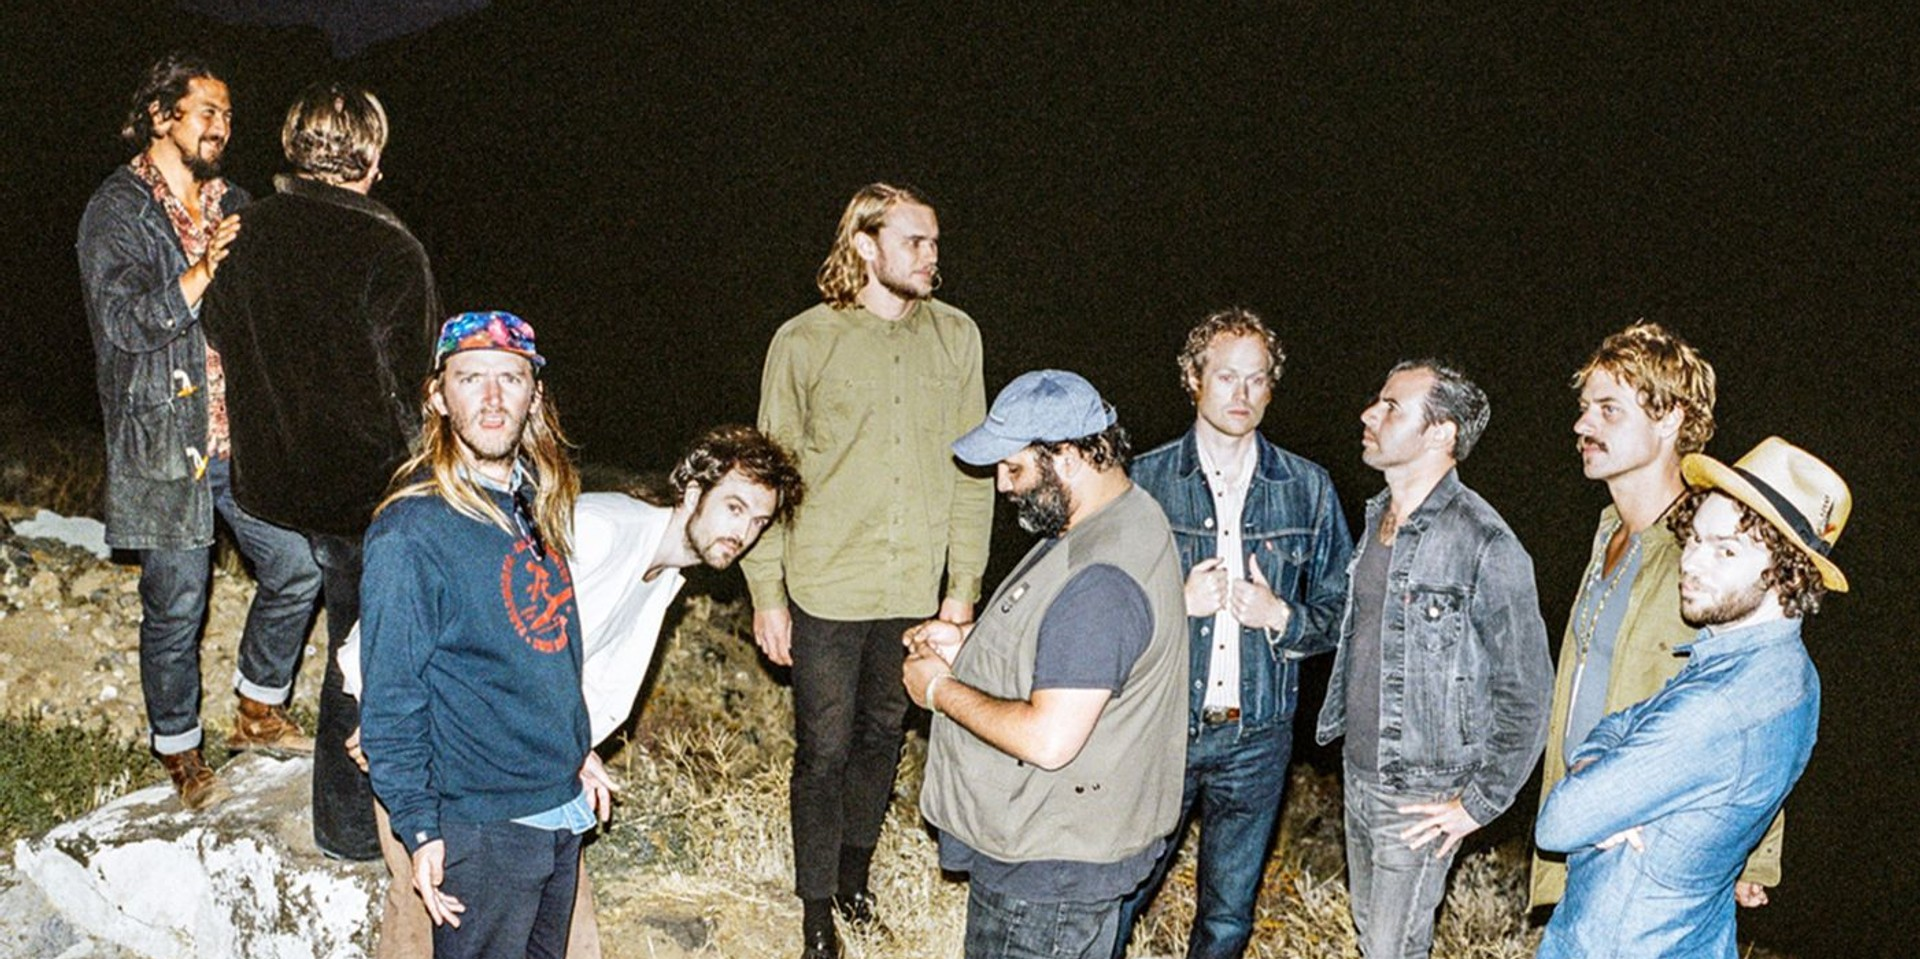 ALBUM REVIEW: Edward Sharpe and the Magnetic Zeros - PersonA